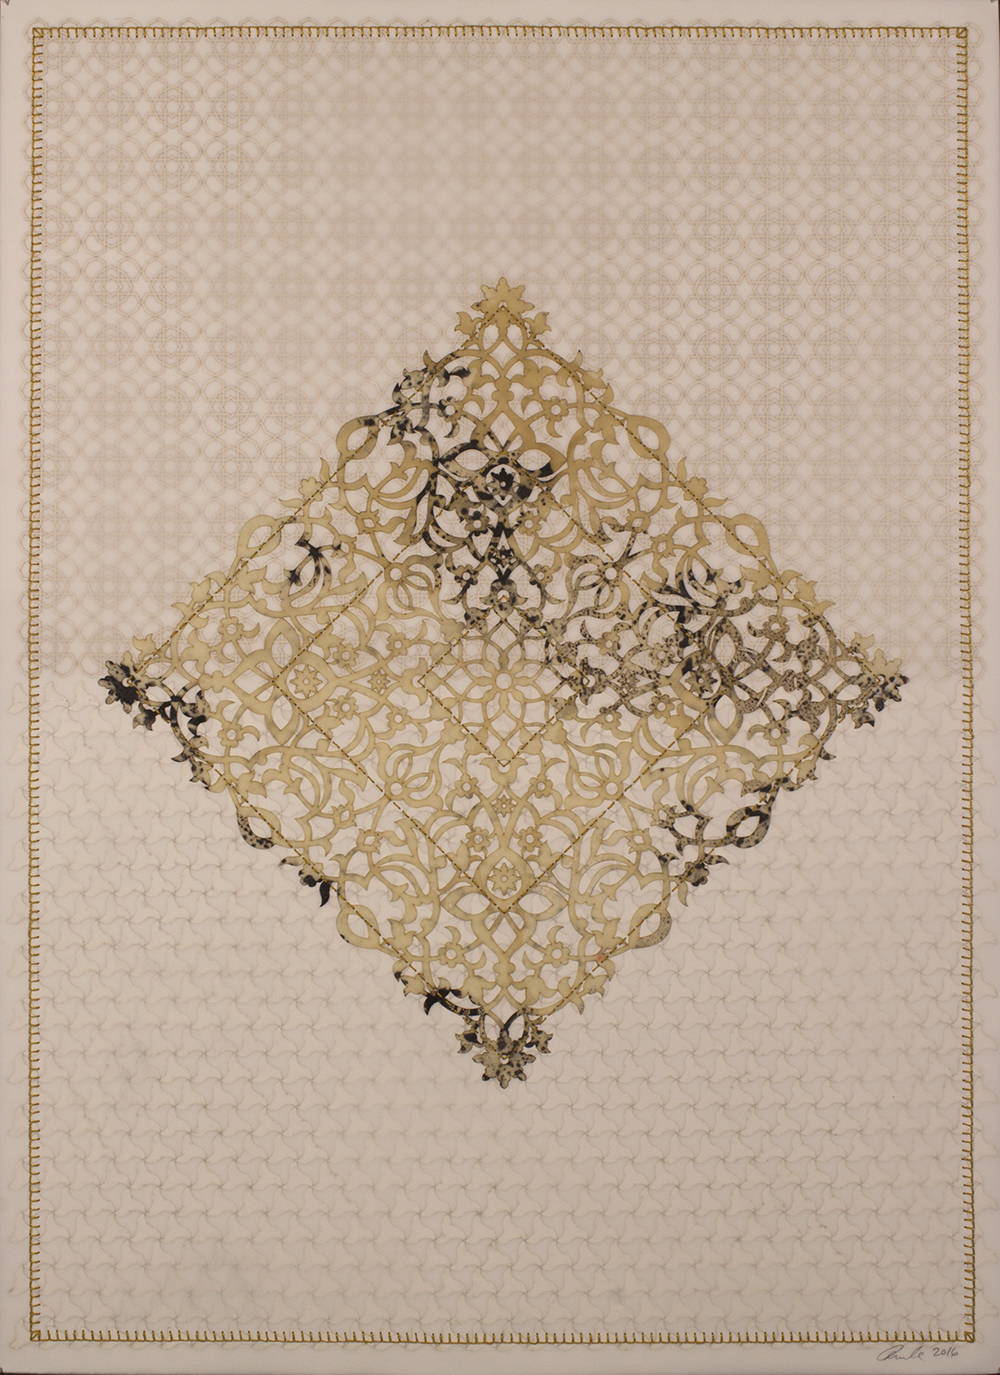 """Antique Lace 4   Mixed media on paper (Laser-cut patterns on paper with mylar, encaustic and embroidery)  30"""" x 22"""" 2016  Walking With My Mother's Shadow-Artist Statement"""